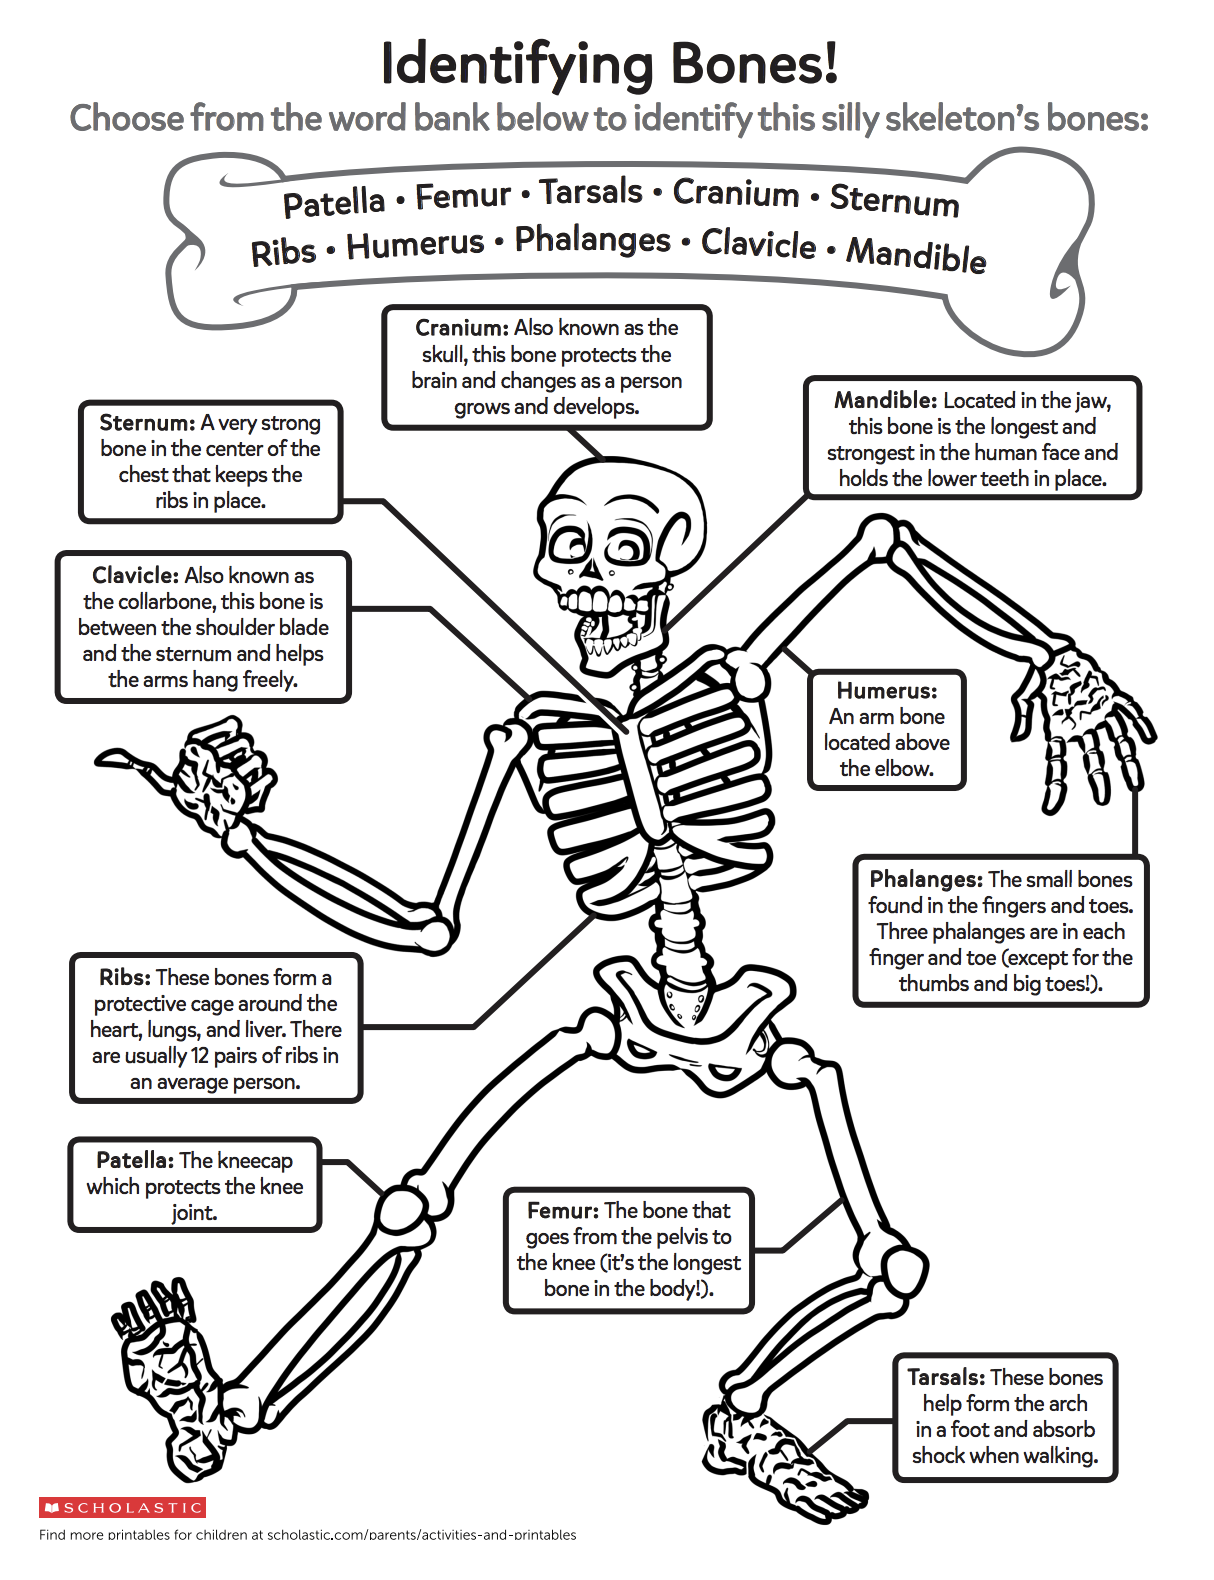 Help Your Child Learn About Growing Bo S With This Bone